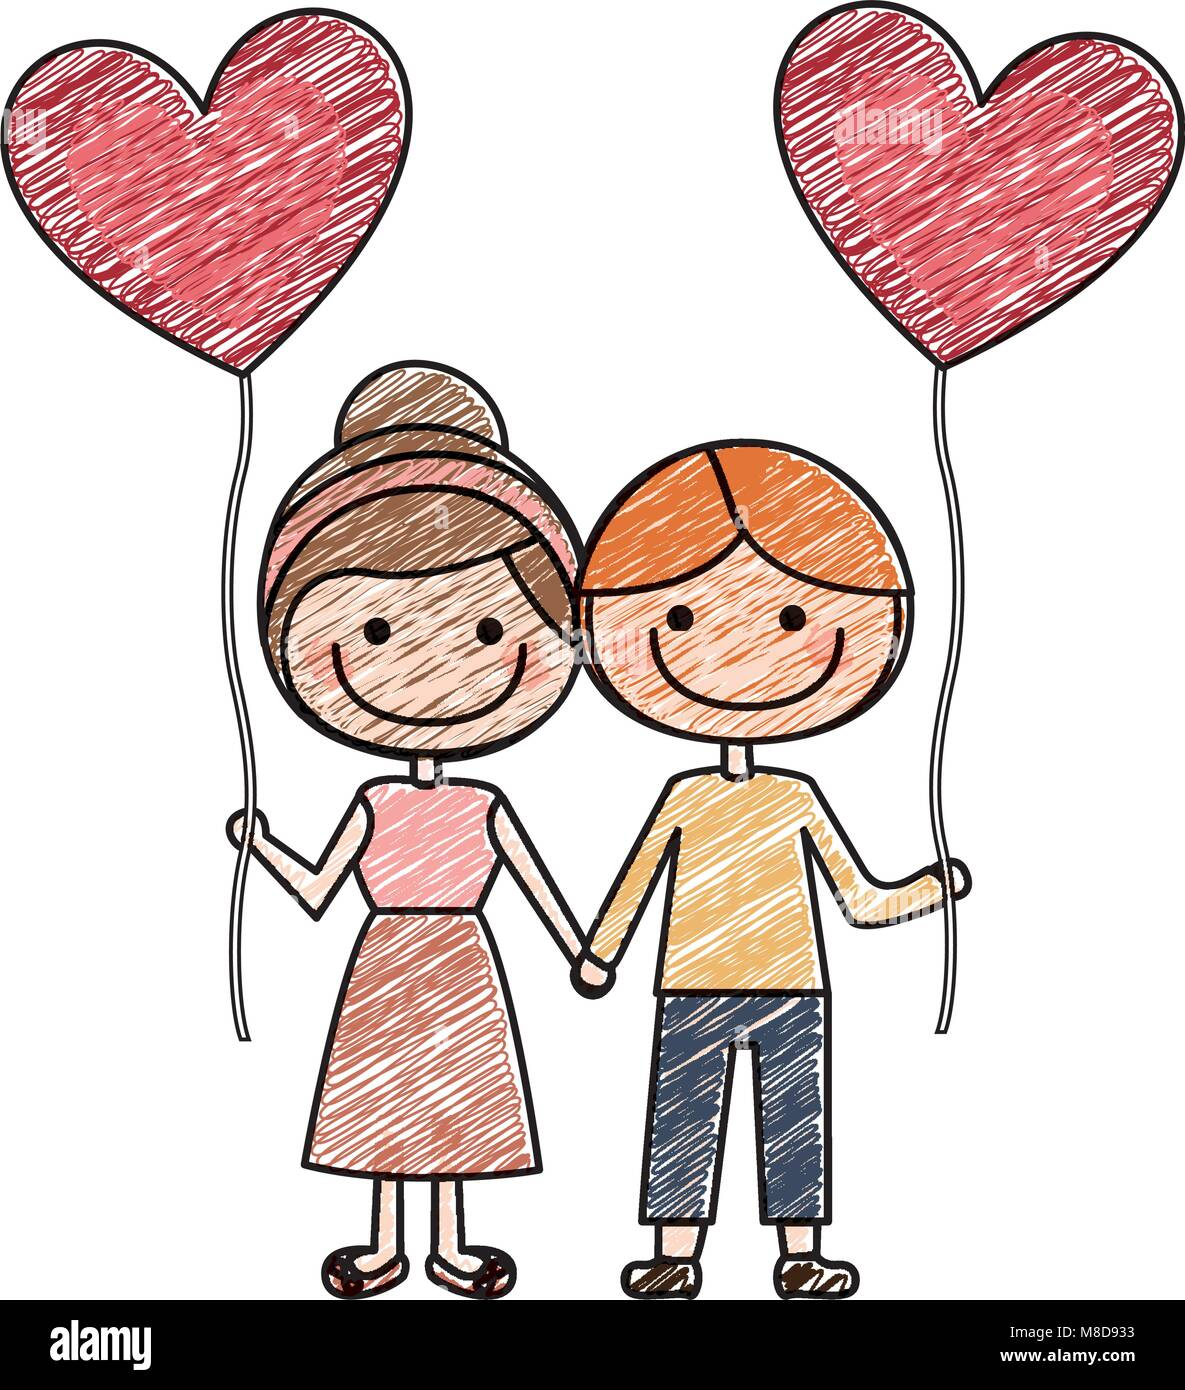 Color Pencil Drawing Of Caricature Of Boy And Girl With Balloon In